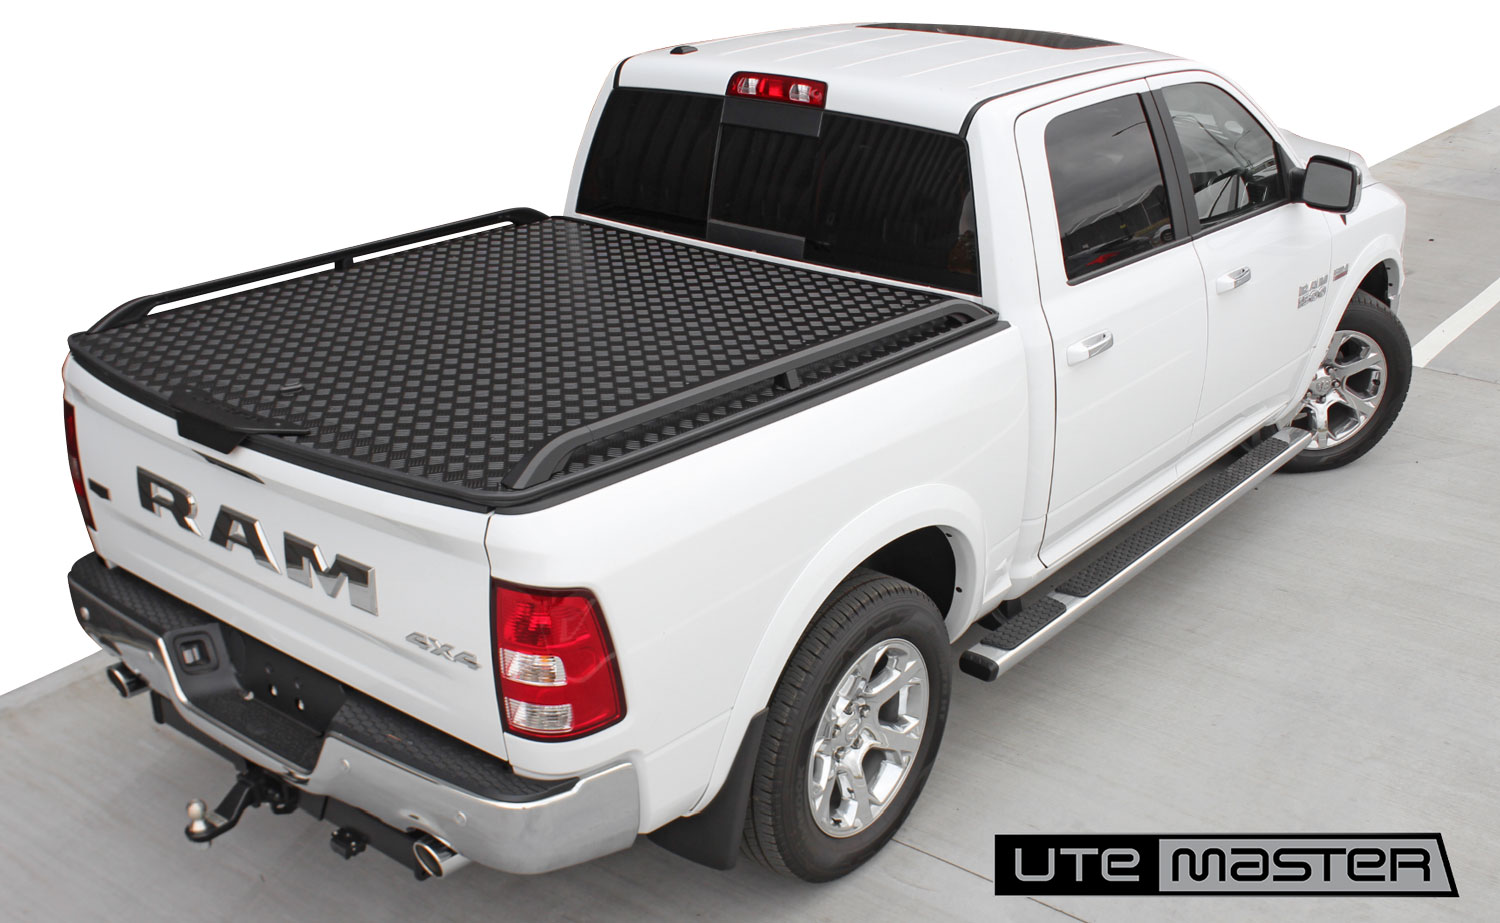 Hard Lid to suit Dodge Ram 1500 Roller Shutter Tonneau Cover Alternative Load Lid by Utemaster Tough White